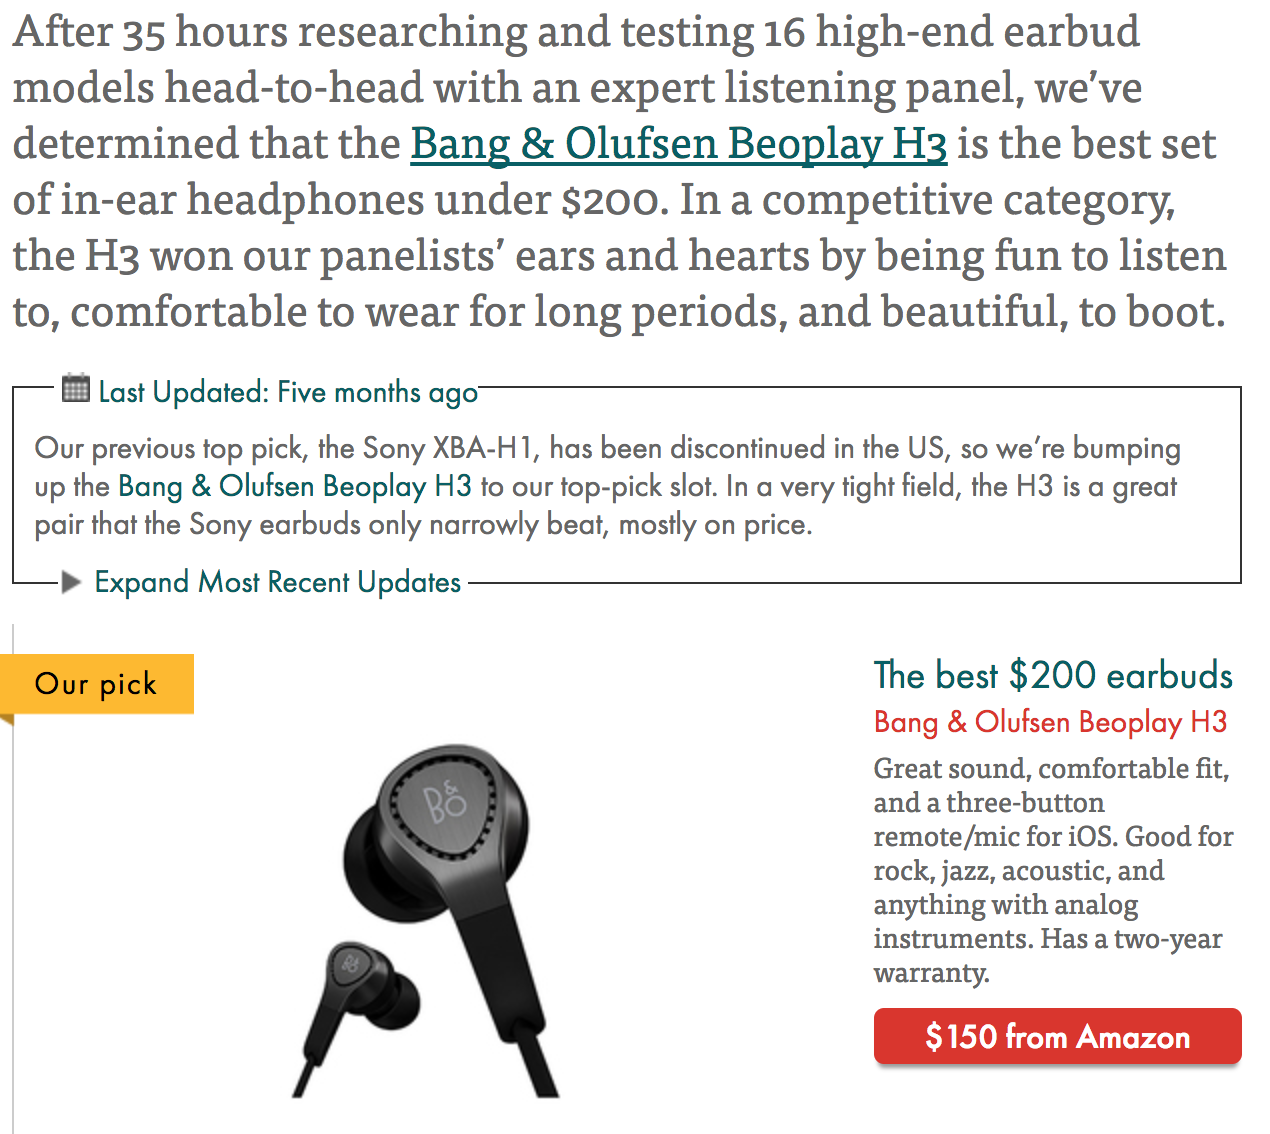 The Wirecutter earbuds